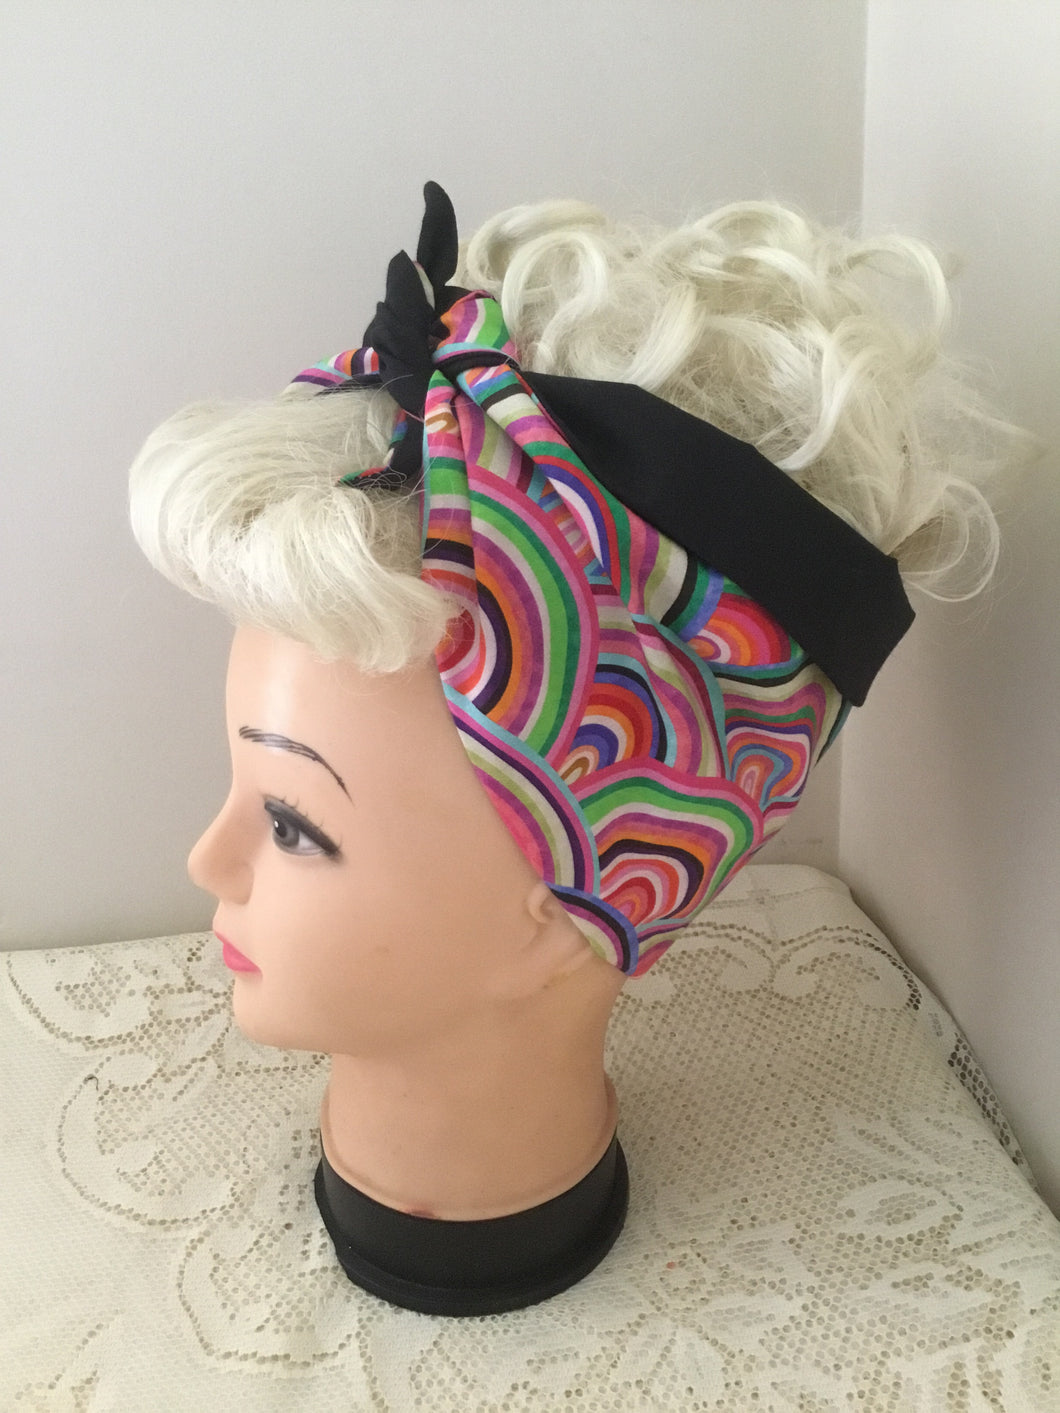 PSYCHEDELIC RAINBOW - Vintage inspired do-rags